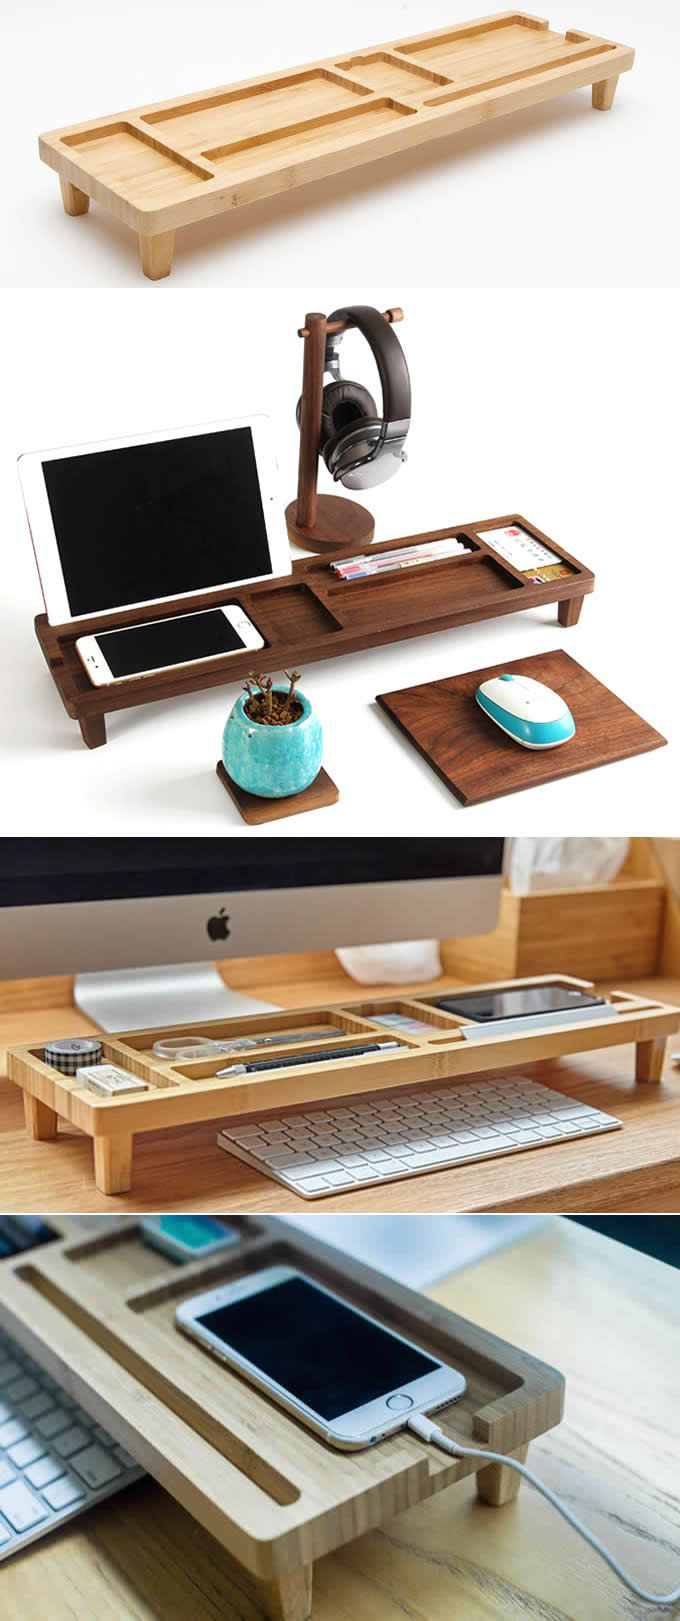 17 best ideas about pen organizer on pinterest ikea - Over the desk organizer ...